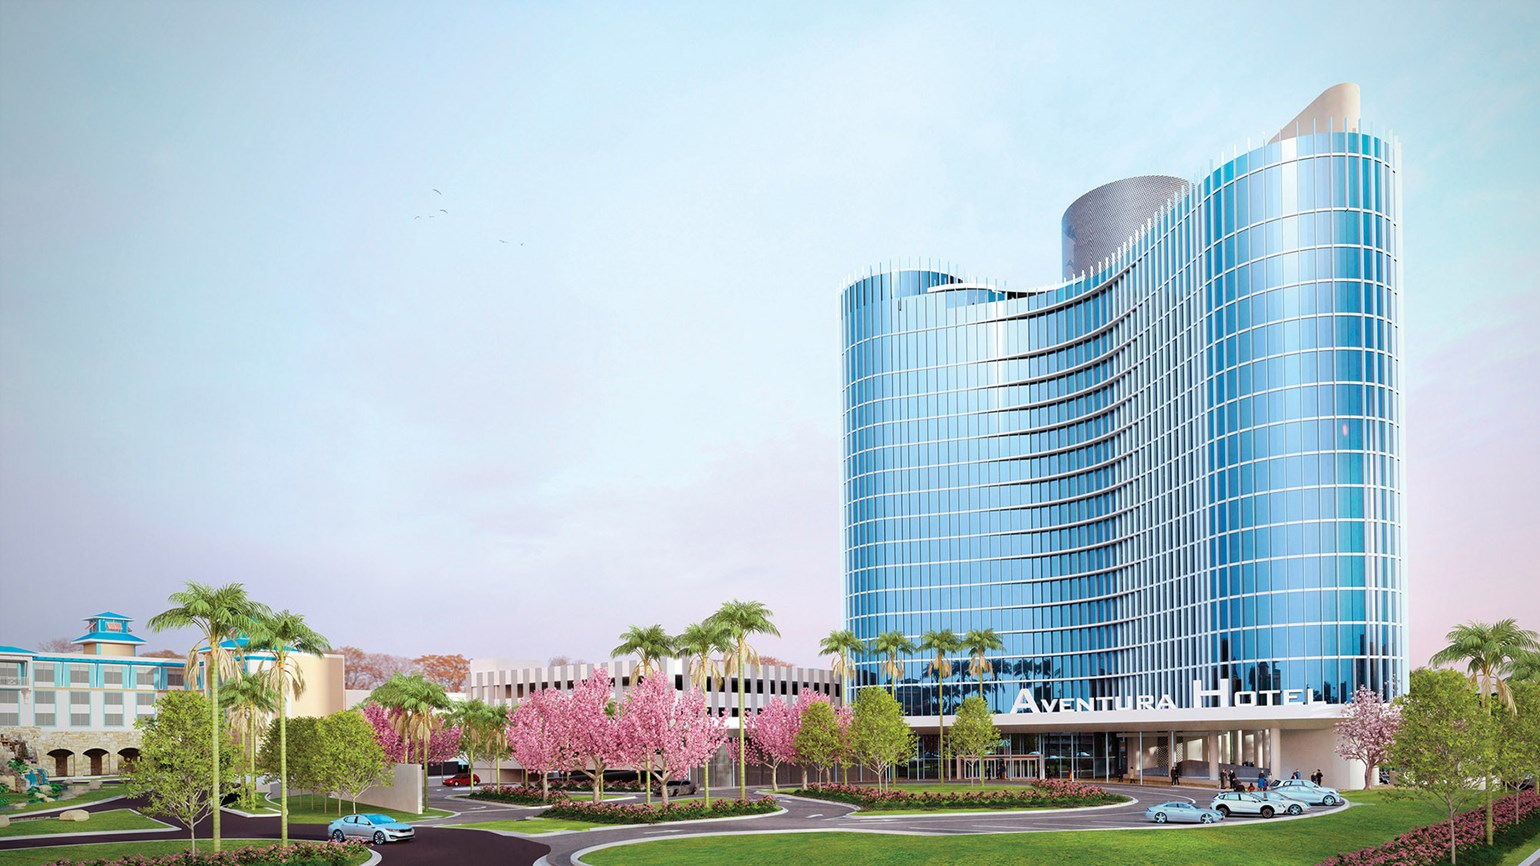 Universal's Aventura Hotel taking reservations for its debut in 2018